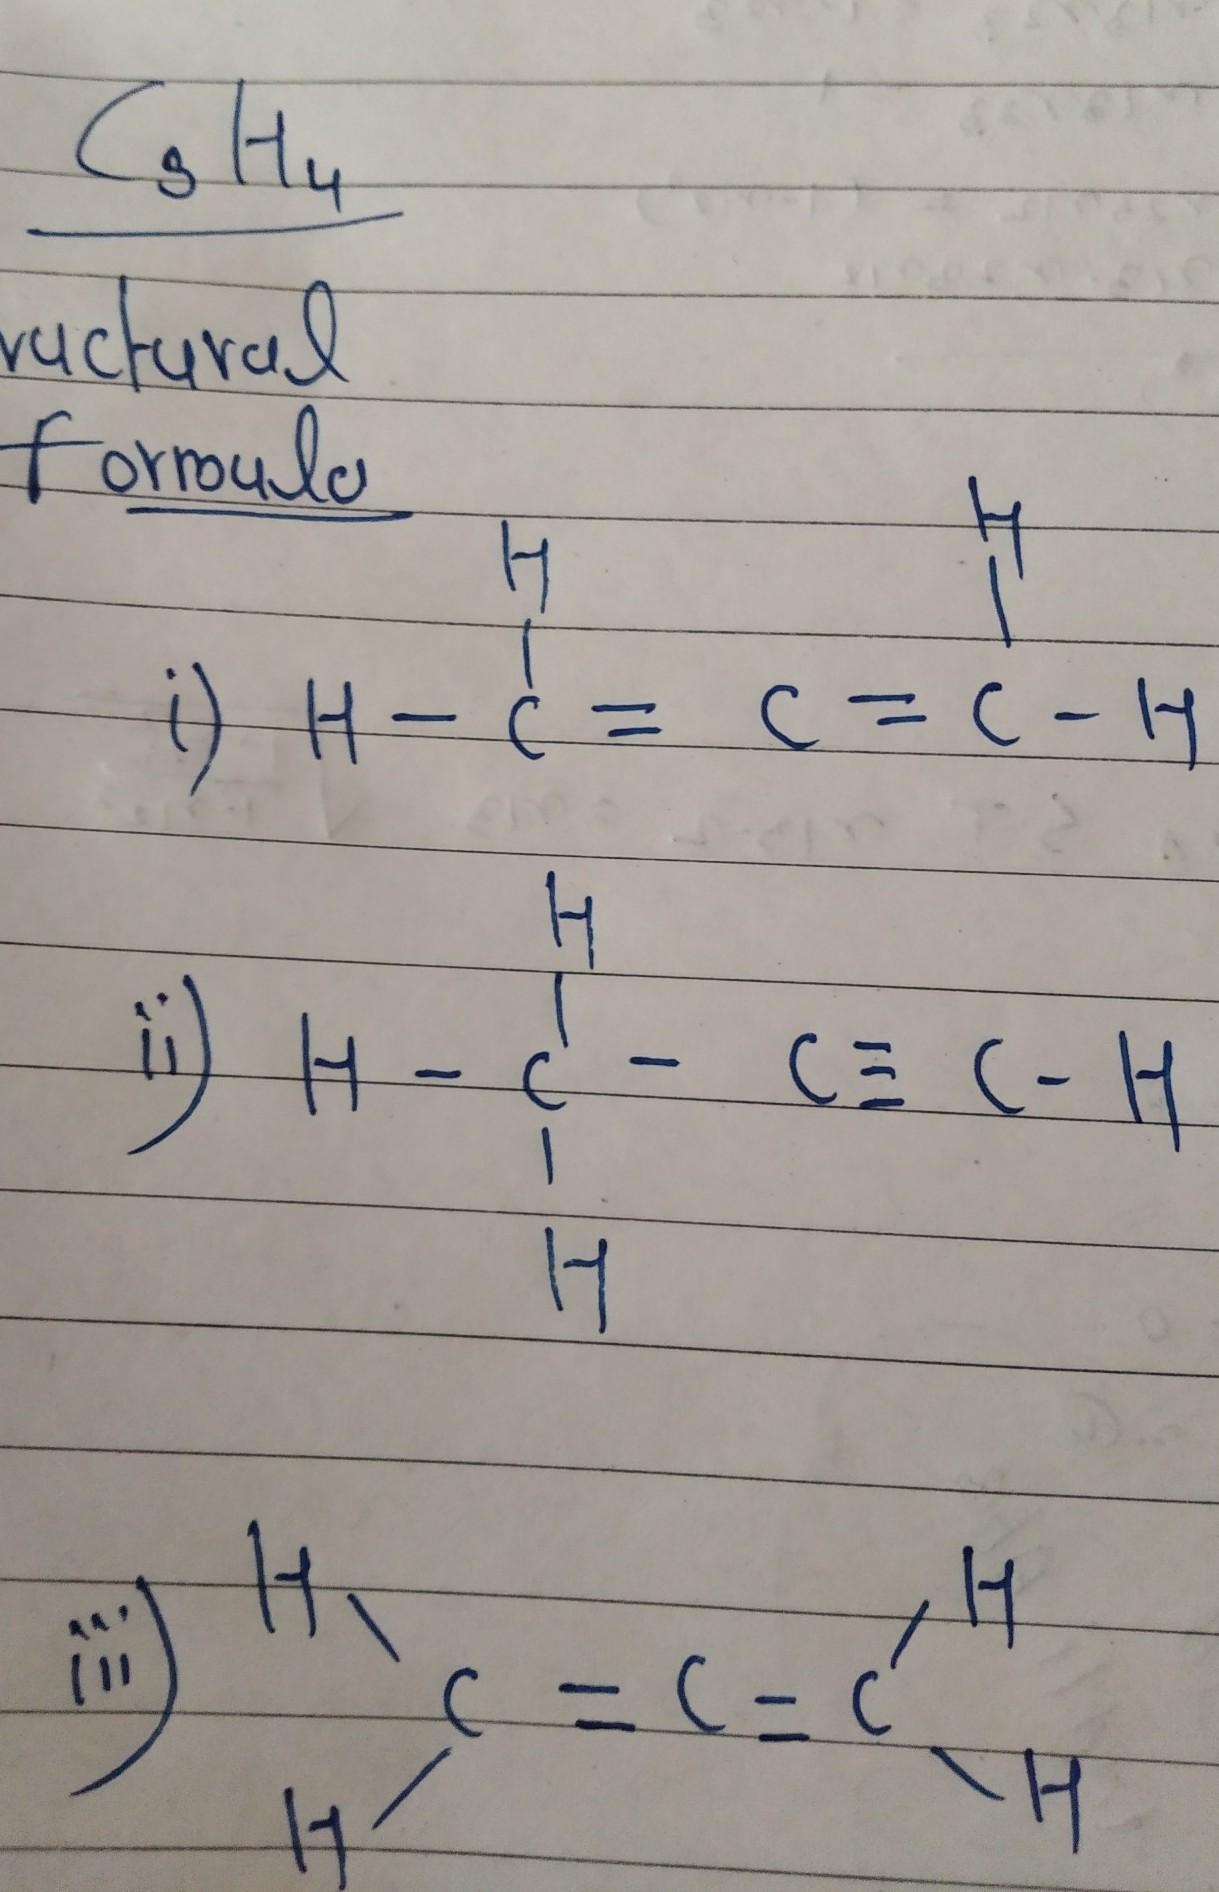 C3h4 : Possible, Structural, Formulaeof, Compounds, Their, Molecularformula, Given, Below.C3H4, Brainly.in